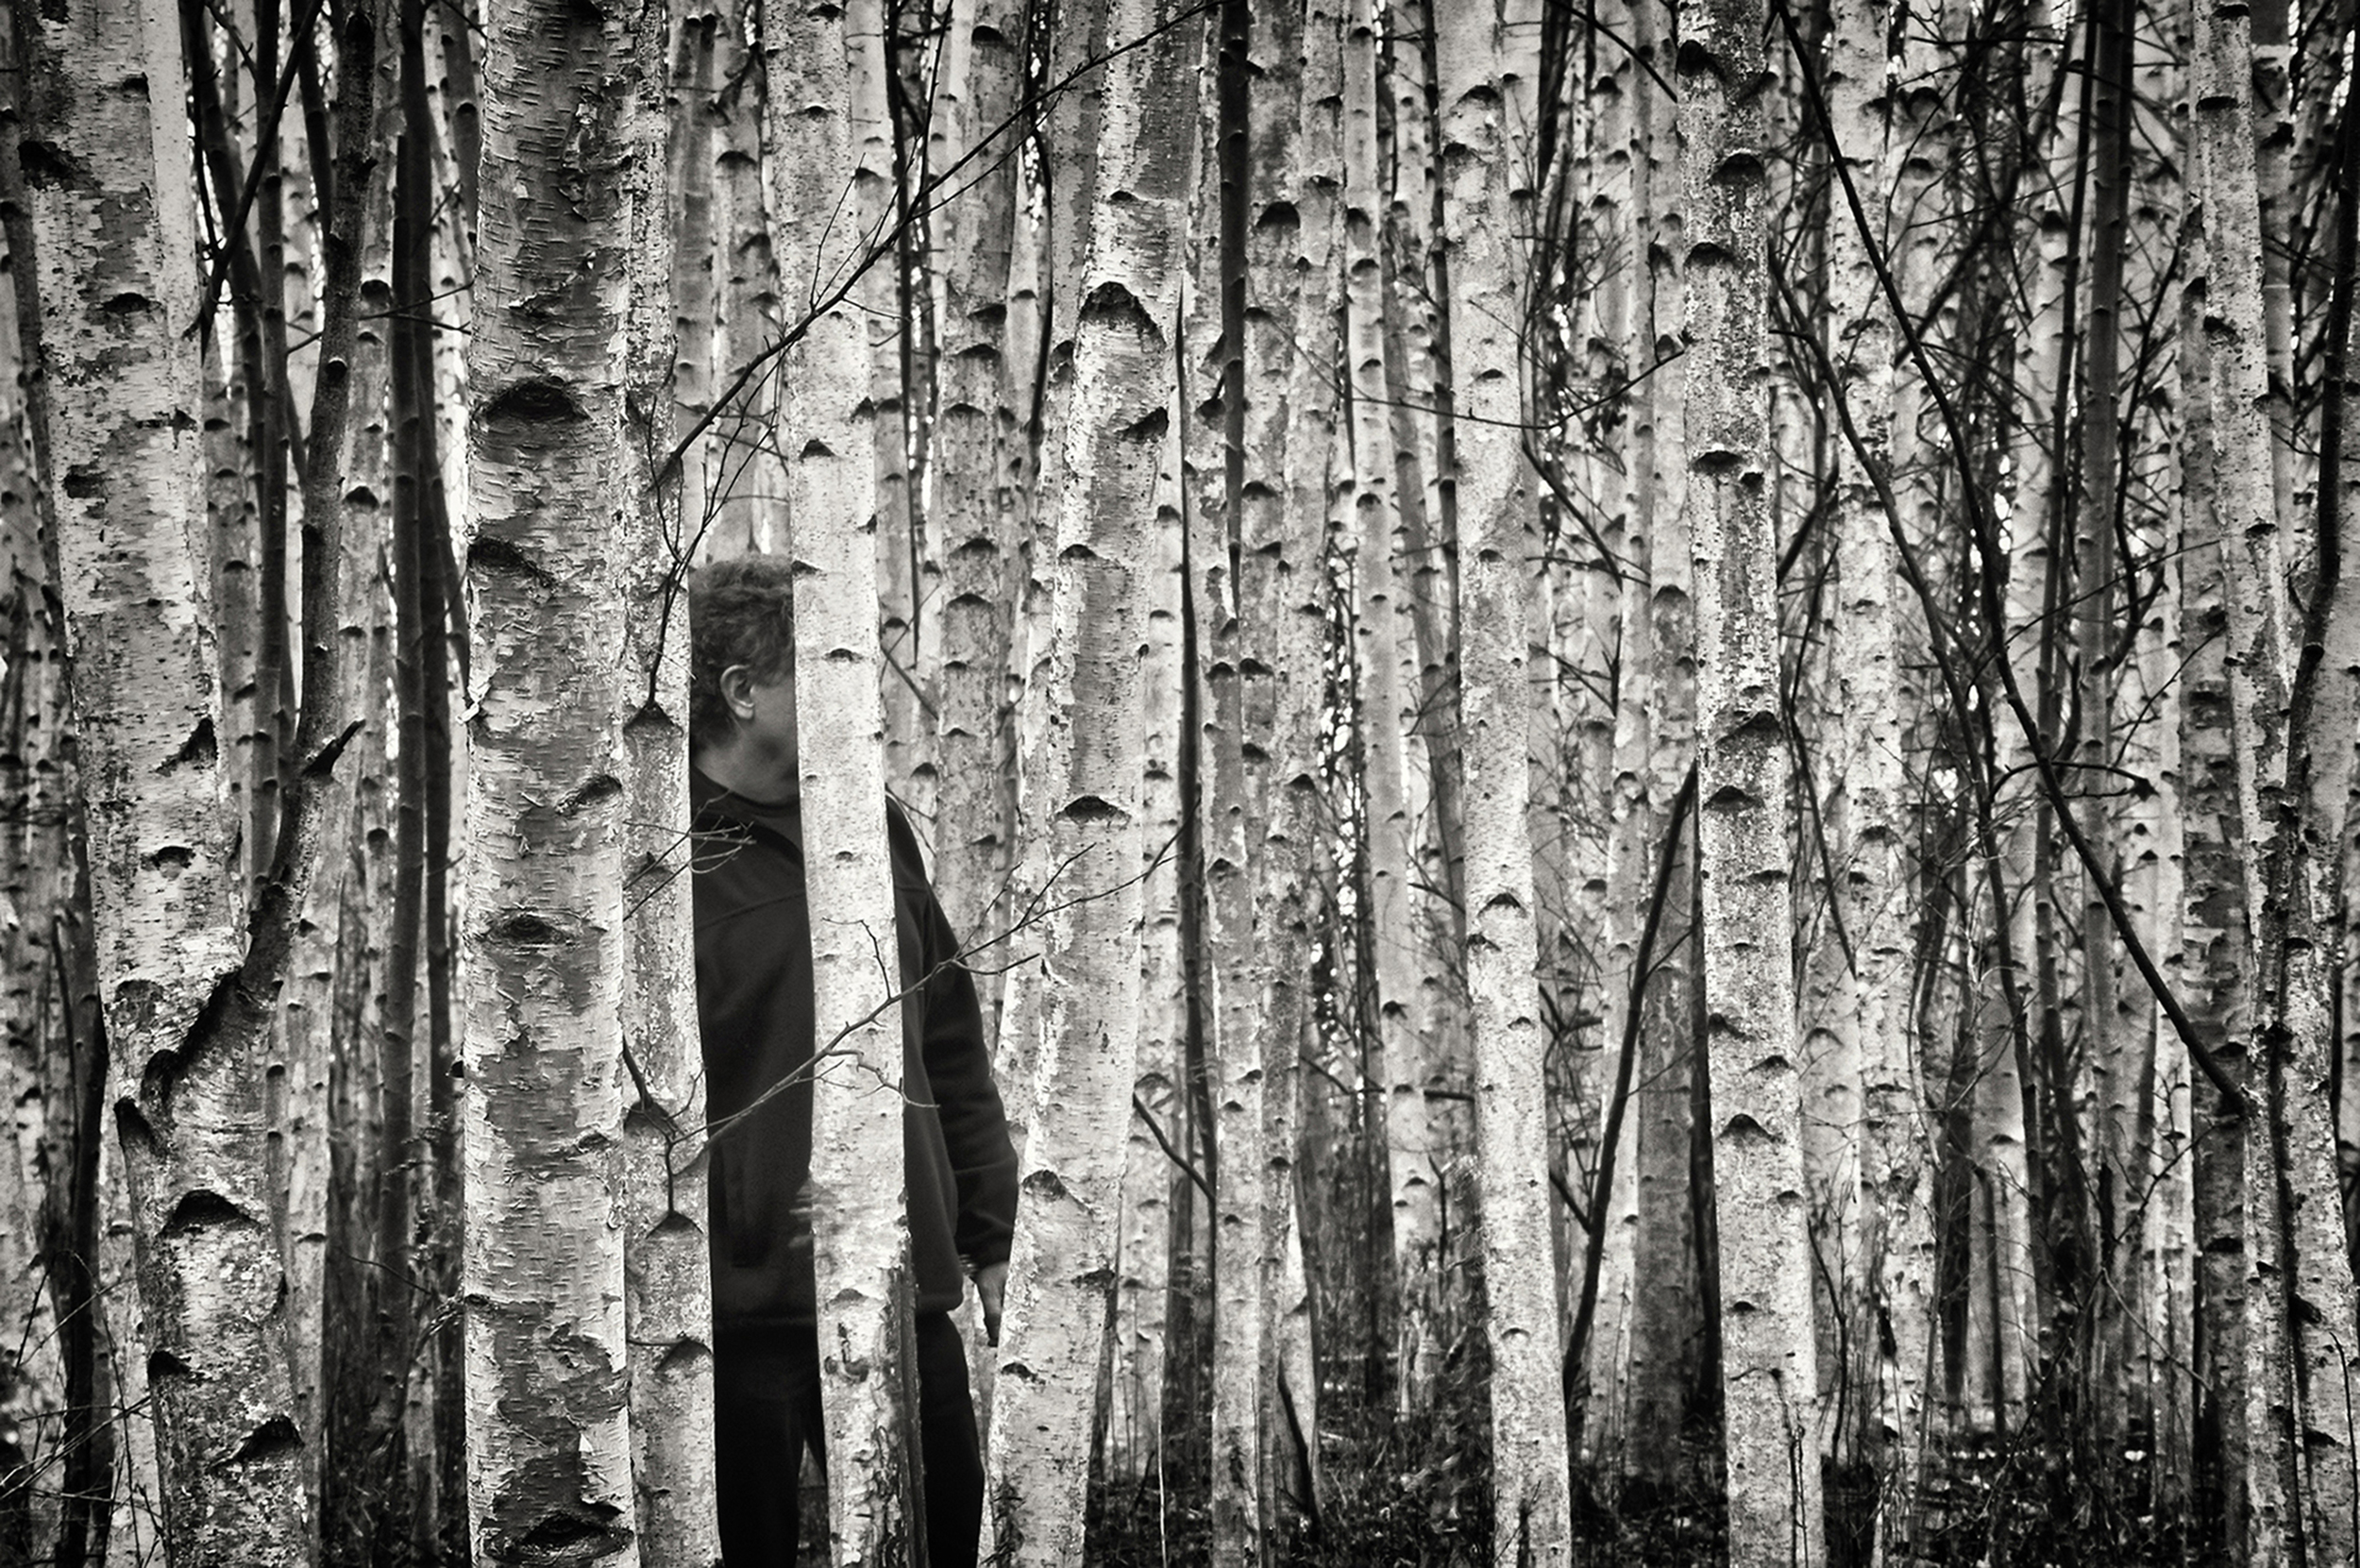 """"""" The Birches"""" , Skaneateles, NY, 2012 © Ted Anderson"""